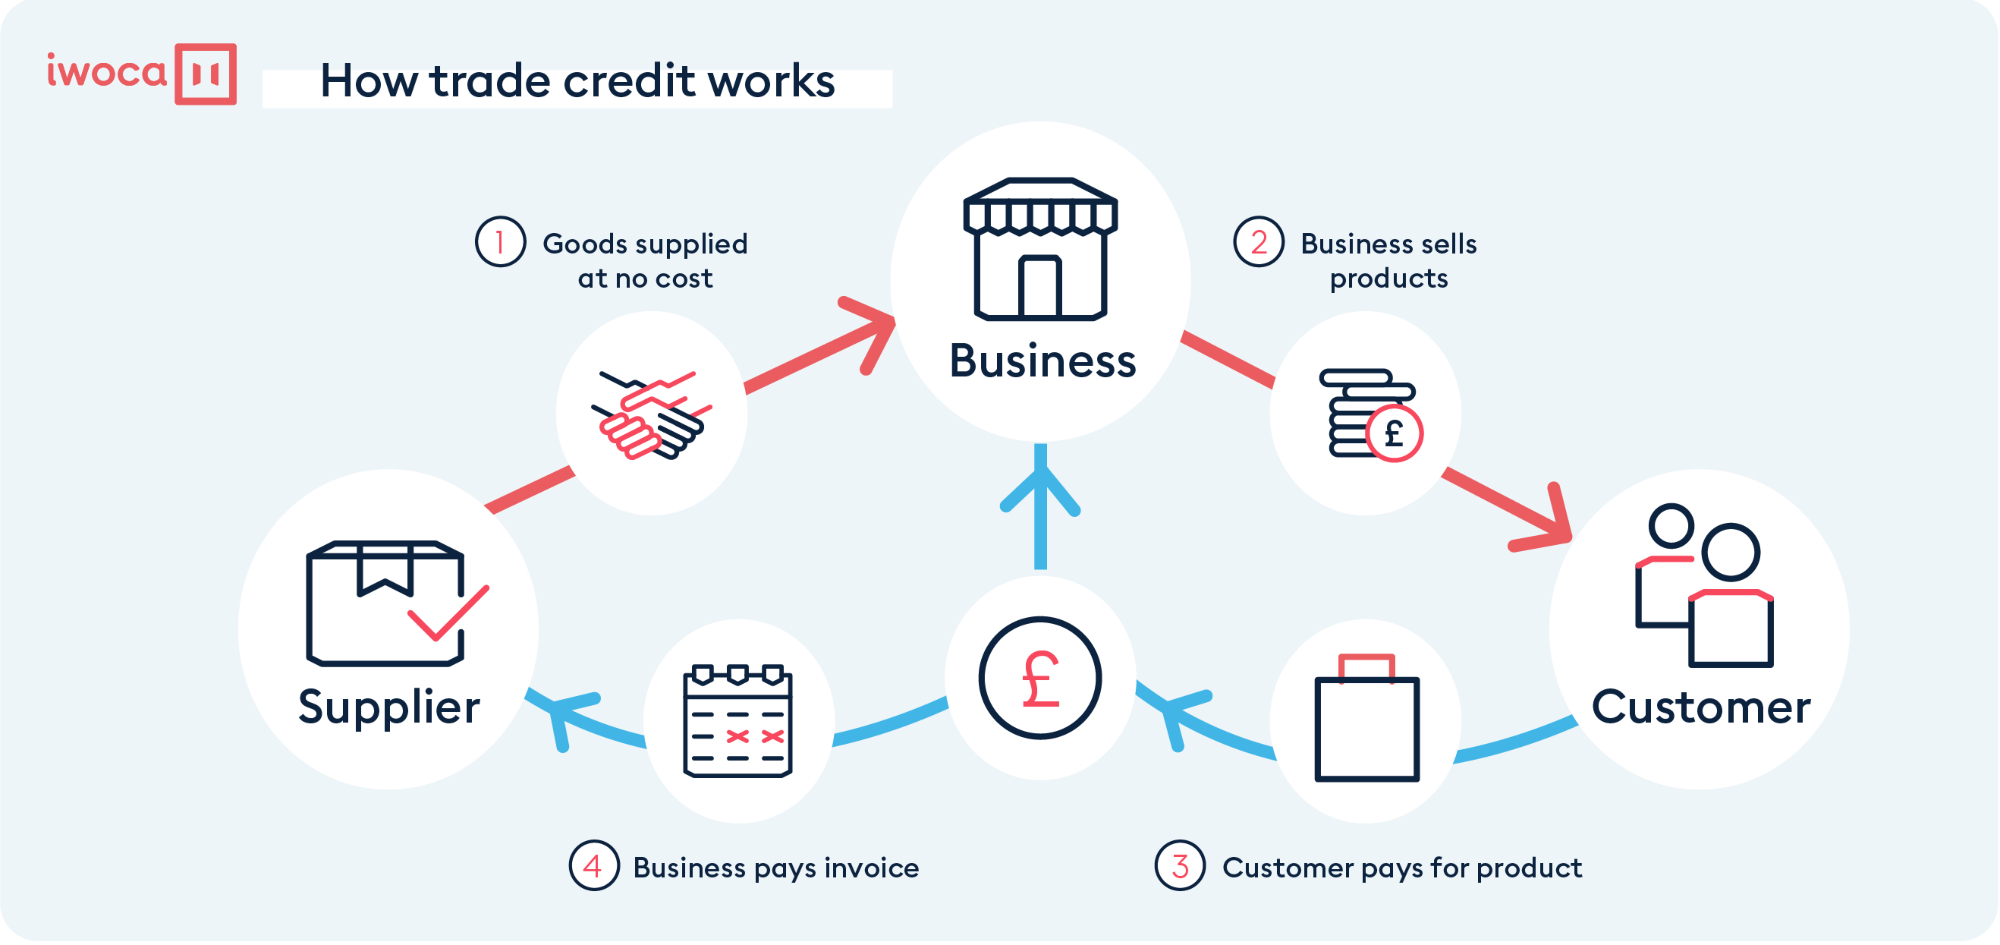 How trade credit works